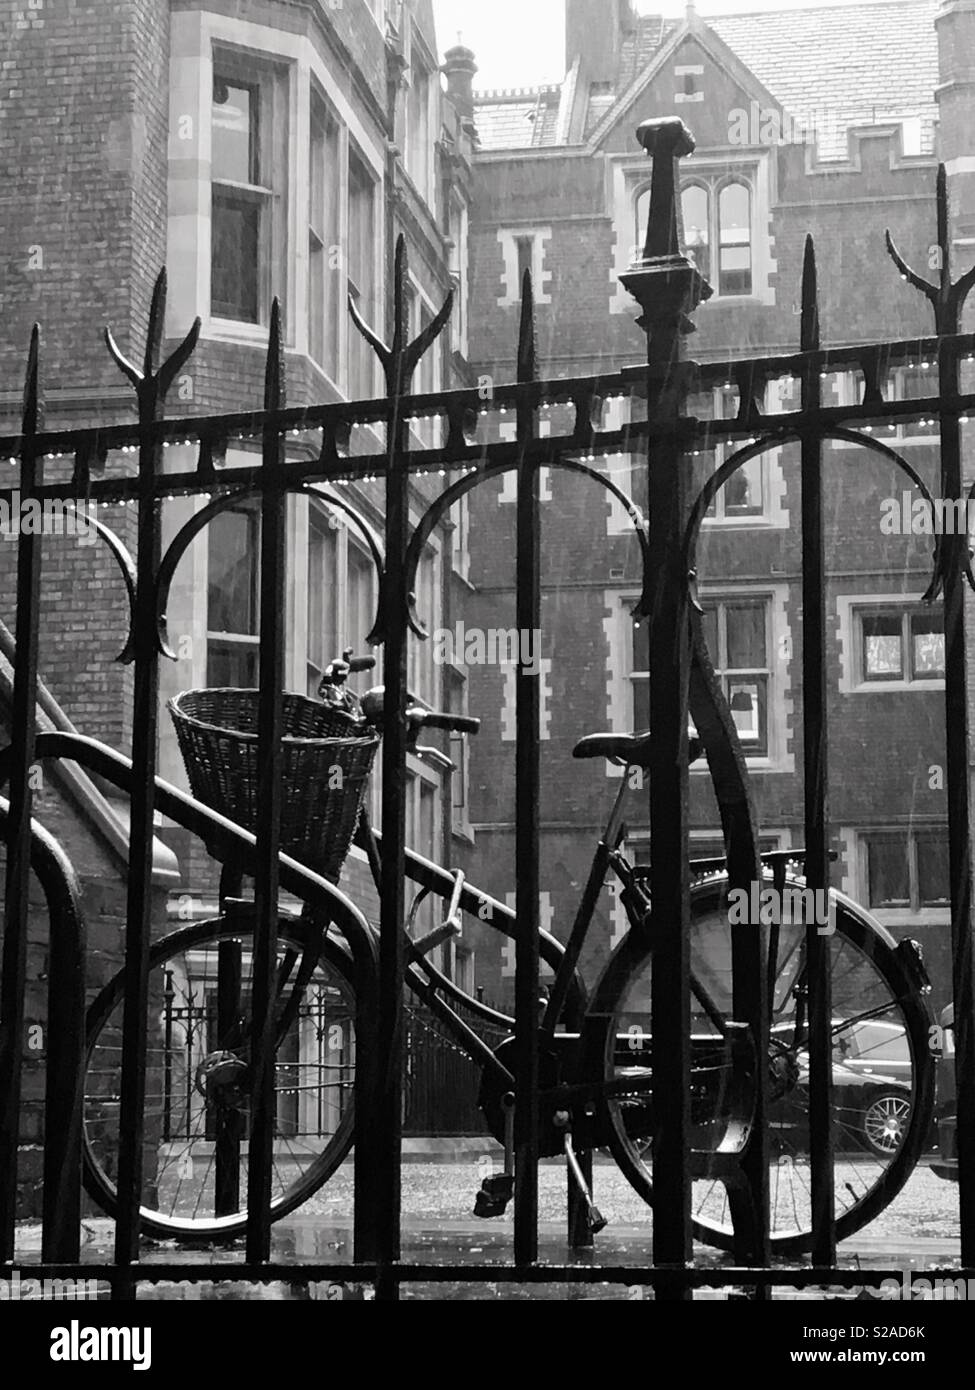 Lincoln's Inn, London, England – old fashioned bicycle, behind a railing, in the rain - Stock Image